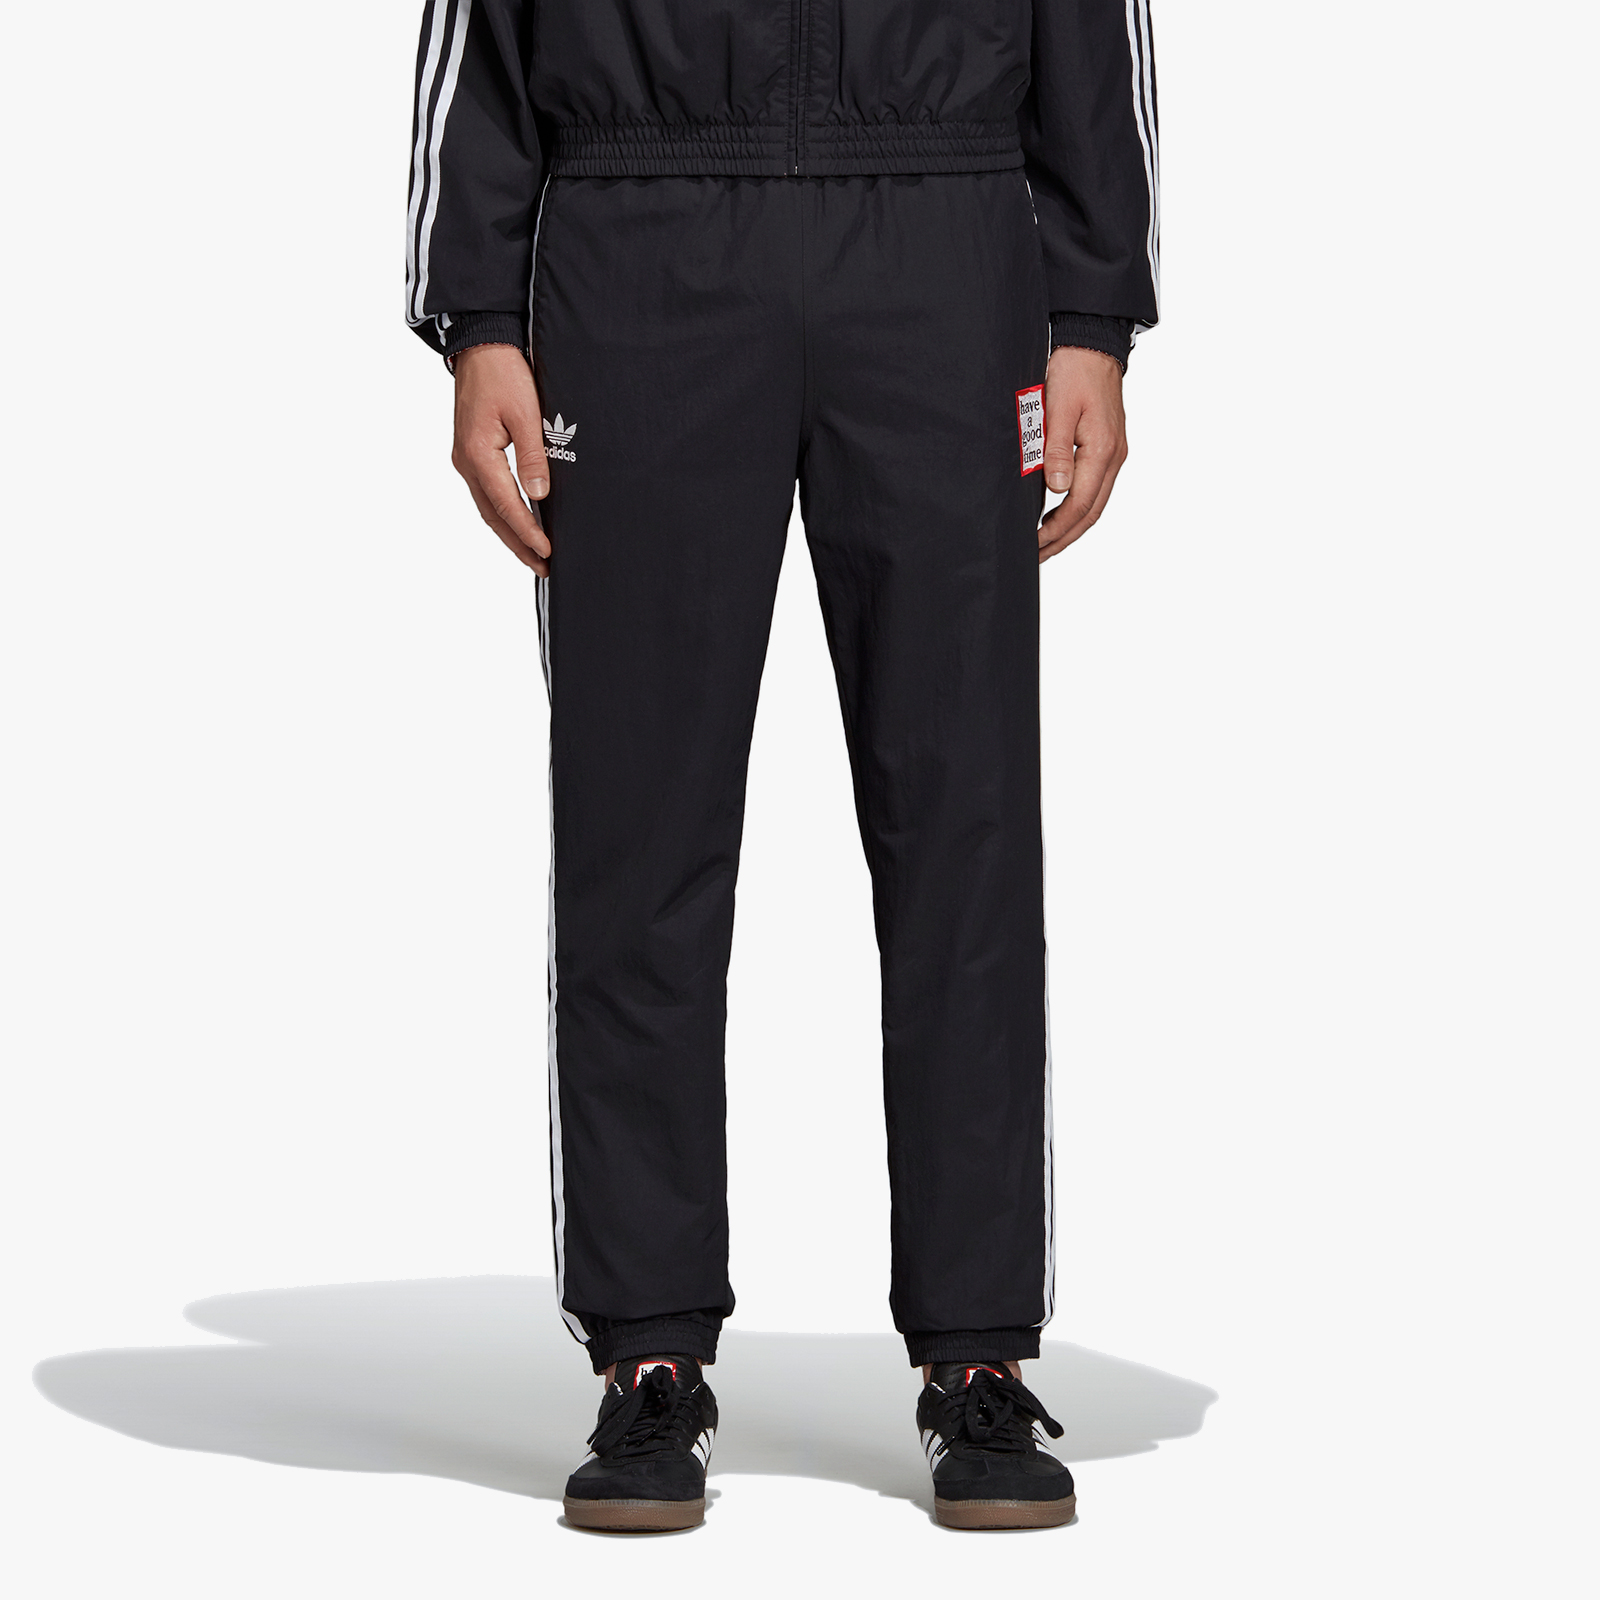 official photos f5a7b a8d18 adidas Consortium Reversible Track Pants x Have A Good Time